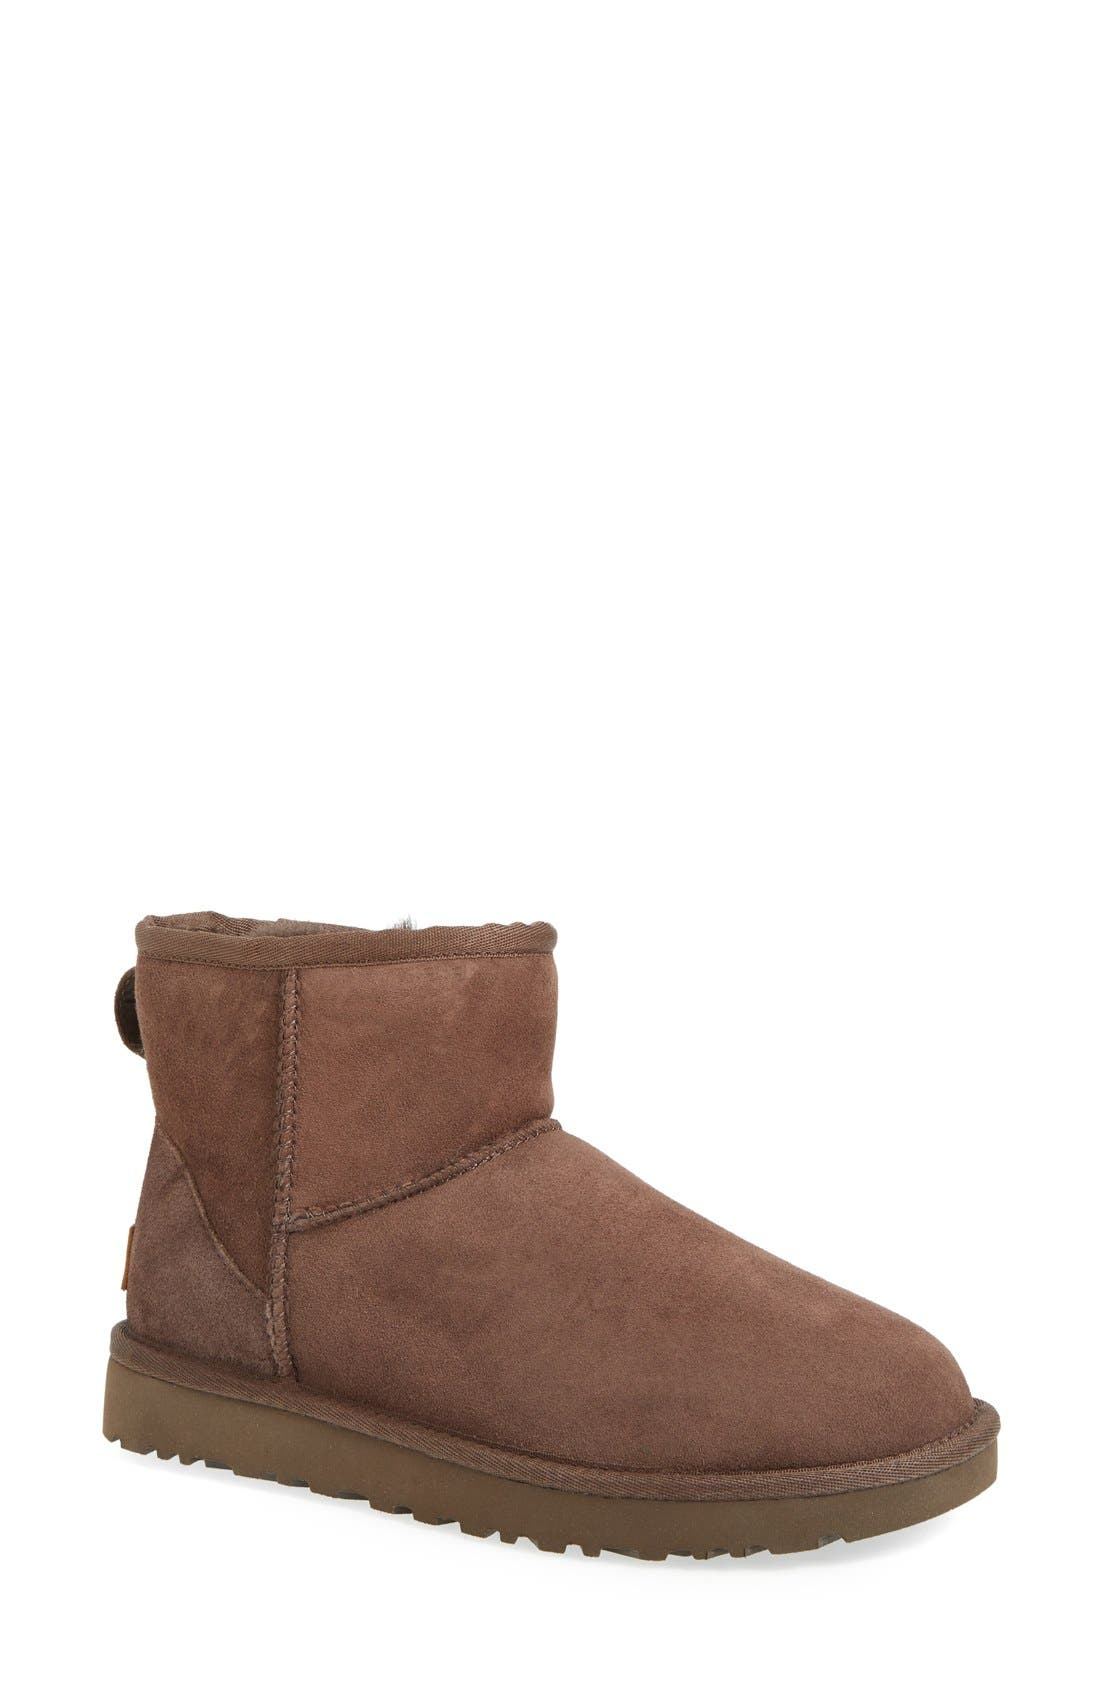 Main Image - UGG® 'Classic Mini II' Genuine Shearling Lined Boot (Women)